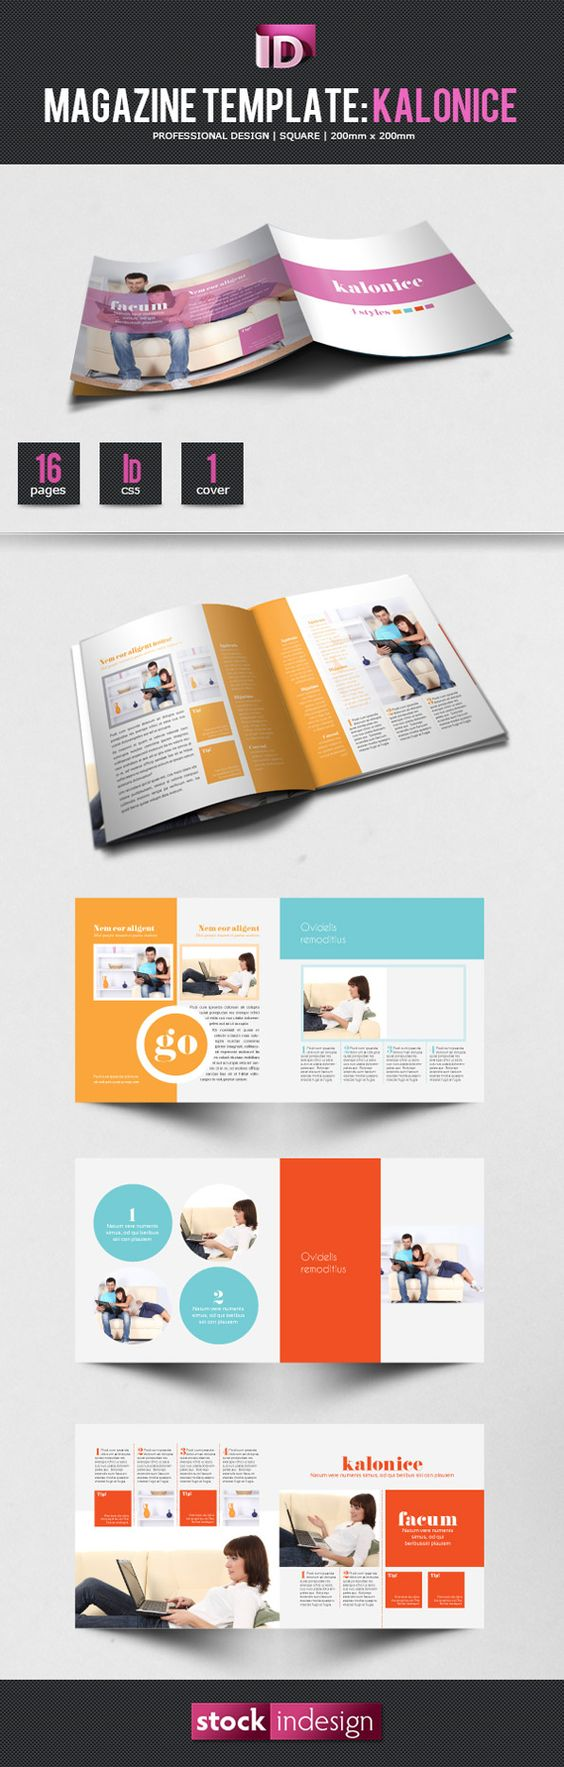 Magazine template templates and magazines on pinterest for Adobe indesign magazine template download free